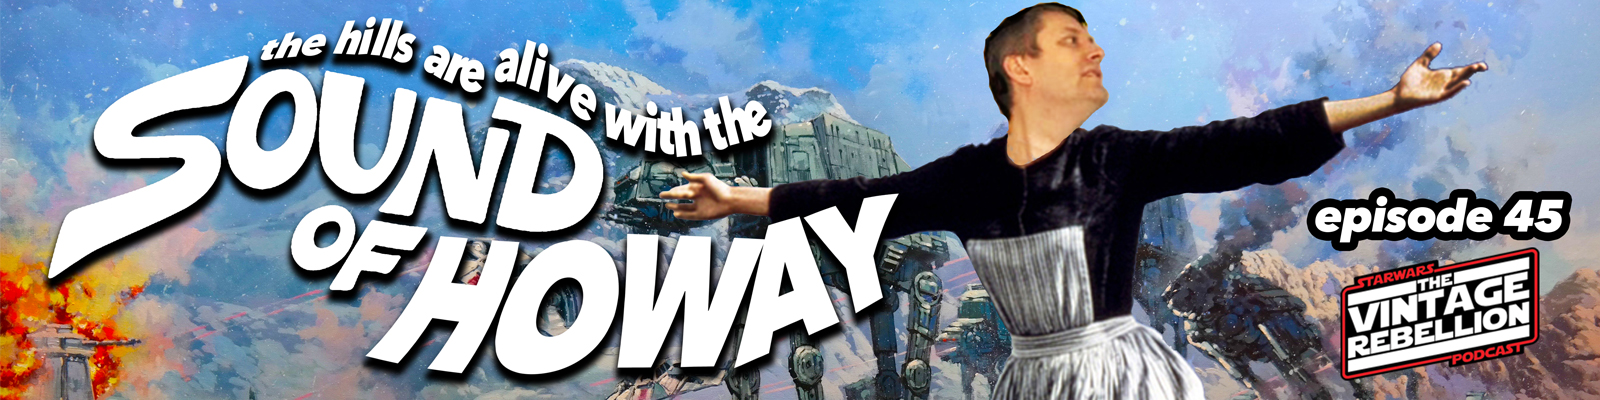 Episode 45 : The Hills Are Alive With The Sounds of Howay